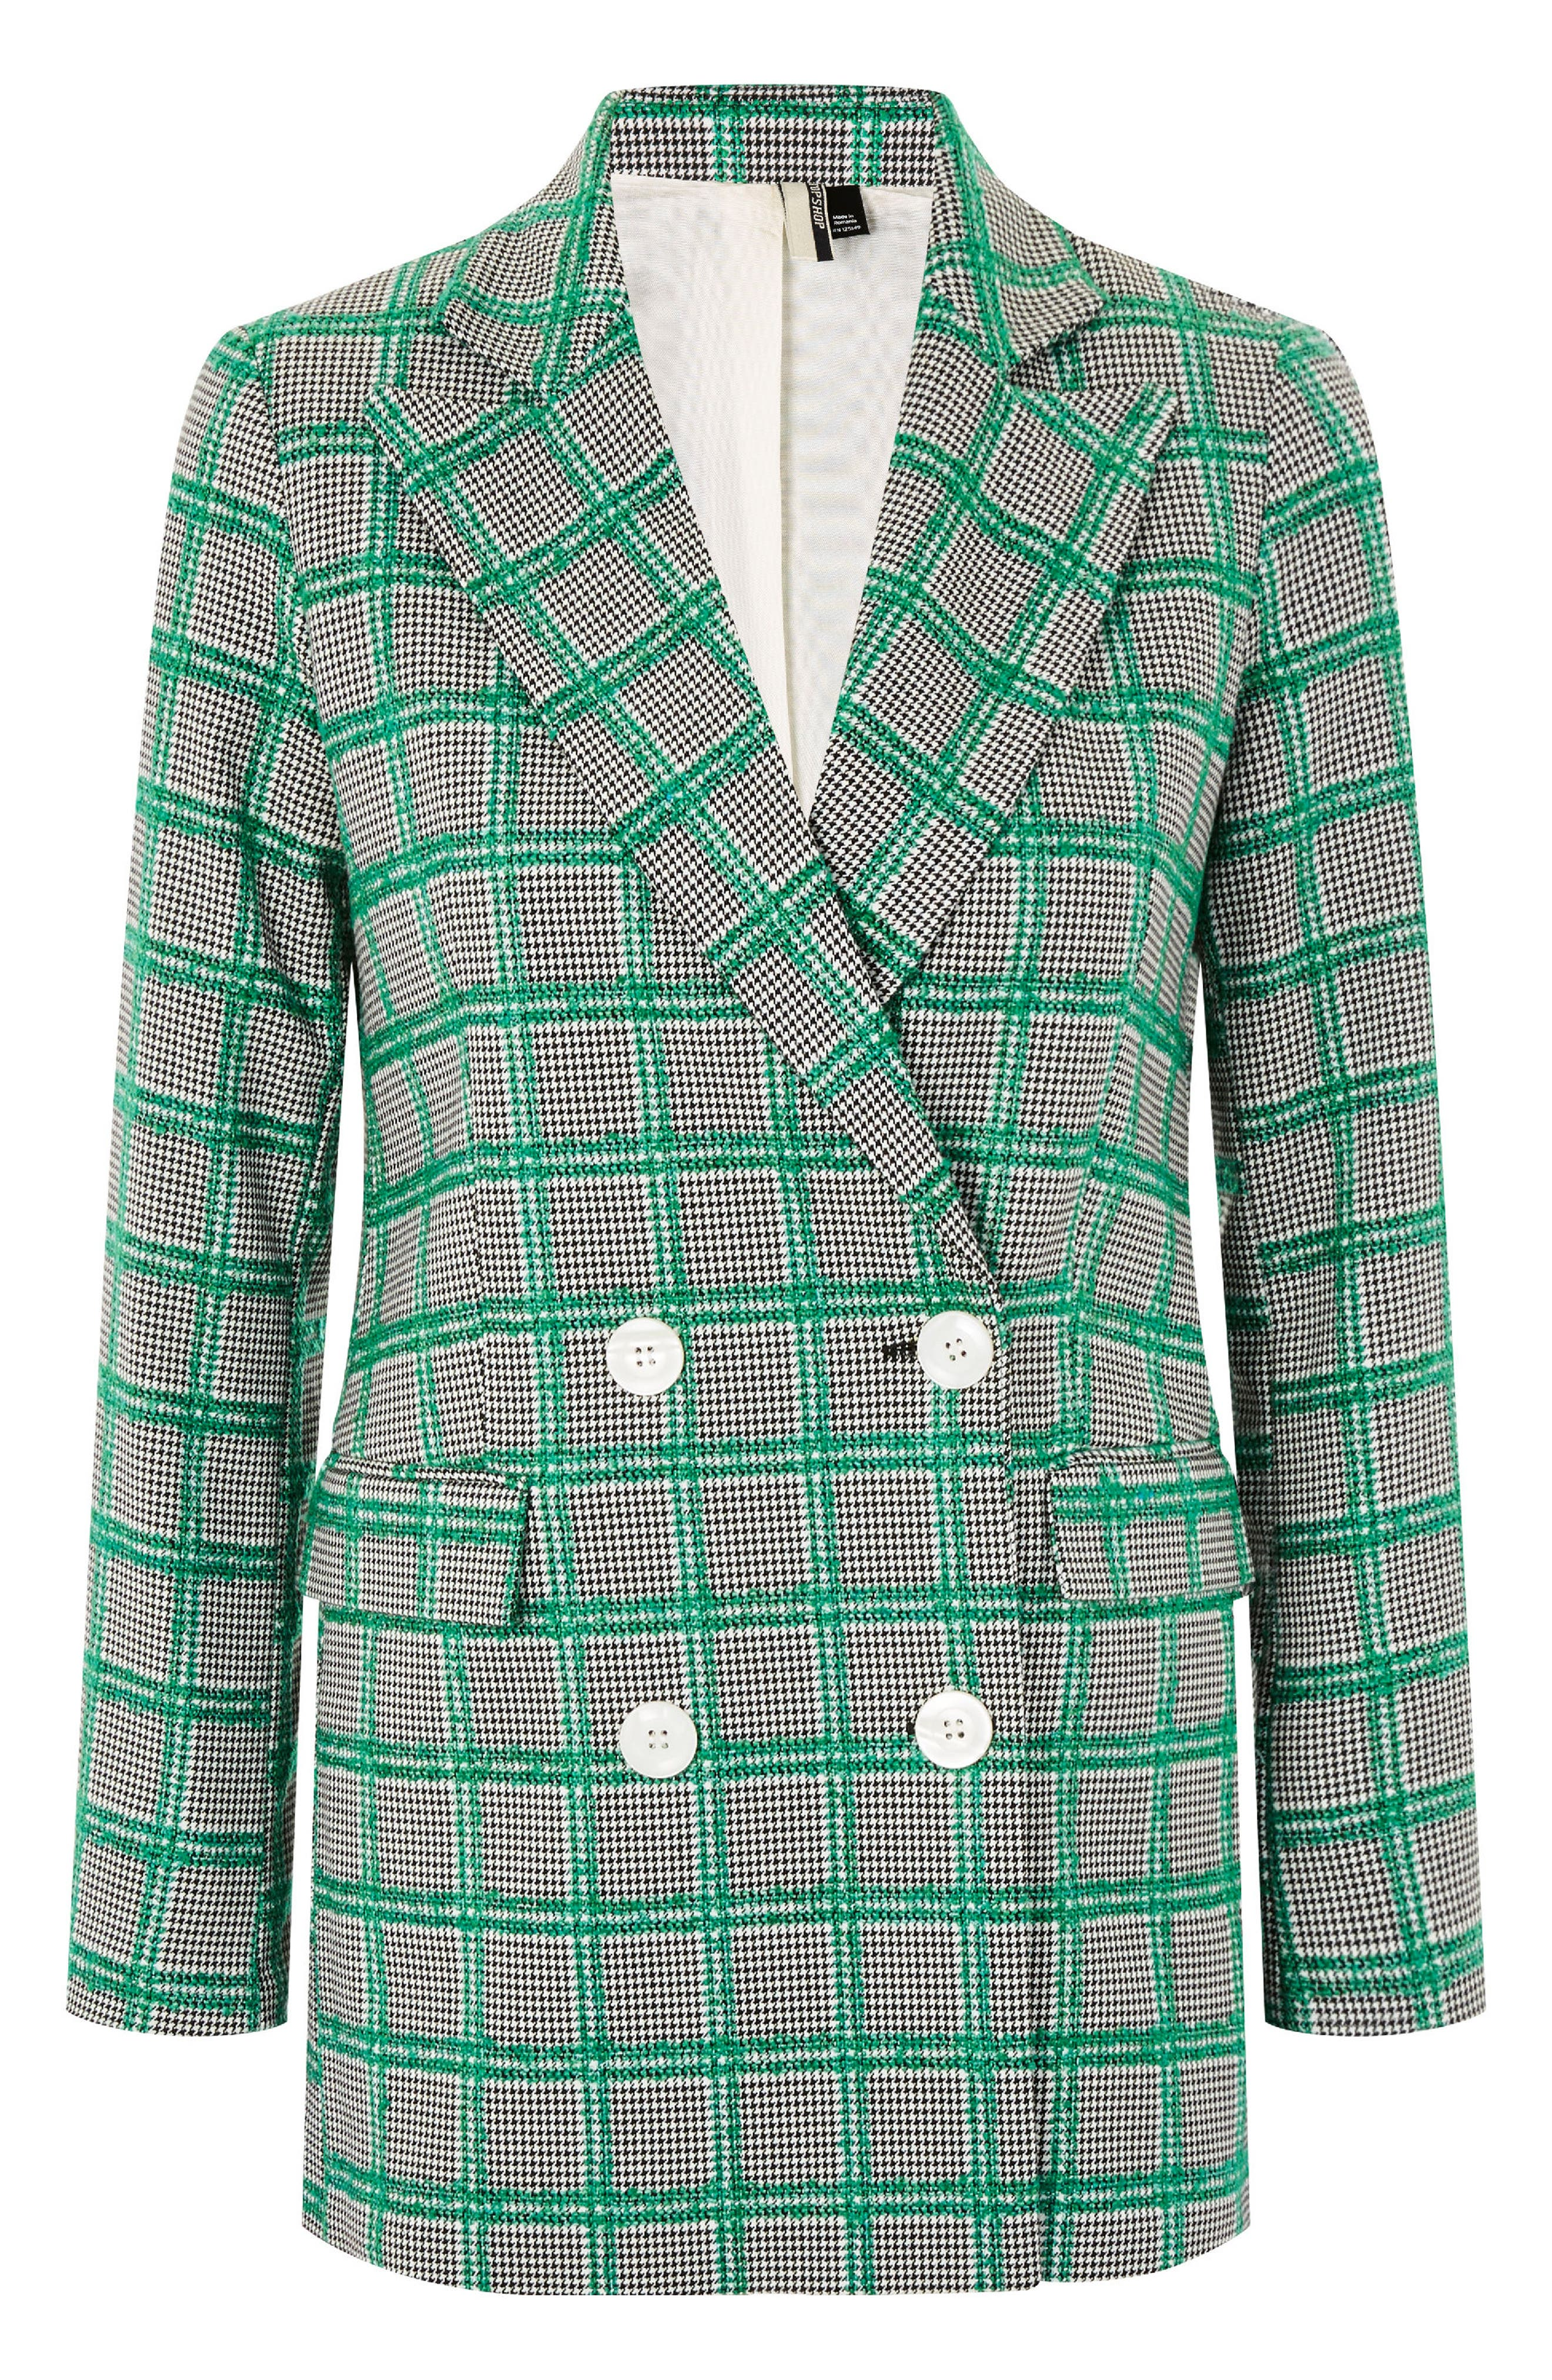 Double Breasted Windowpane Plaid Jacket,                             Alternate thumbnail 4, color,                             Green Multi